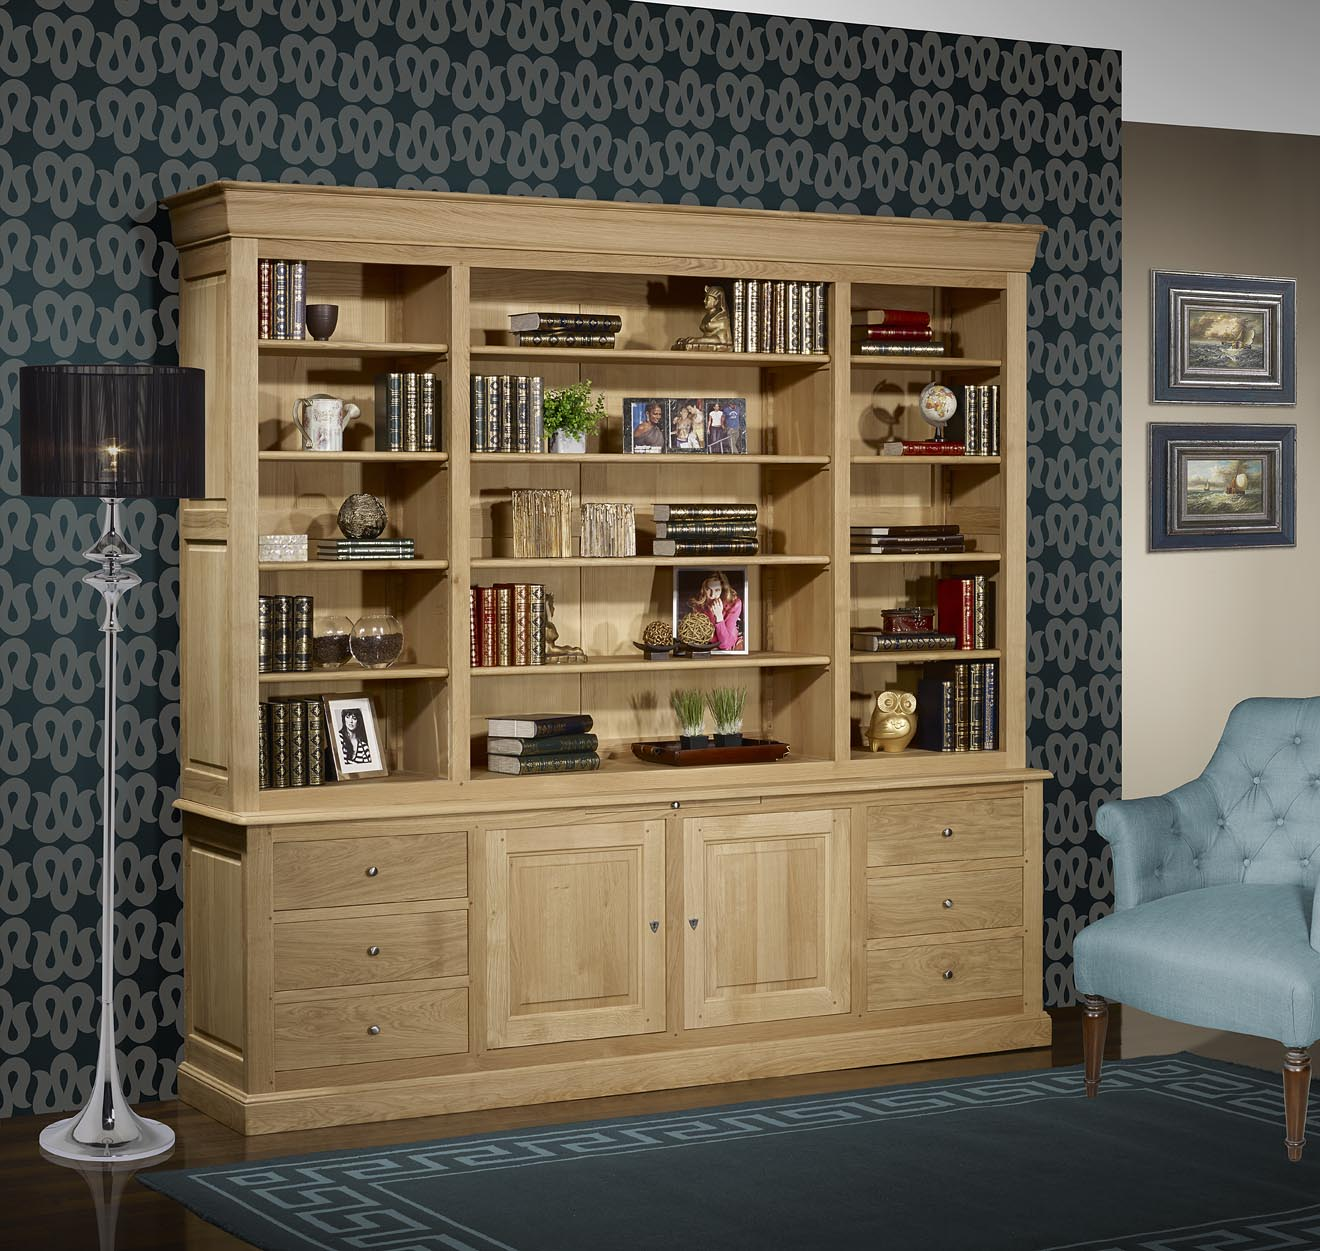 bibliotheque bois massif accueil design et mobilier. Black Bedroom Furniture Sets. Home Design Ideas